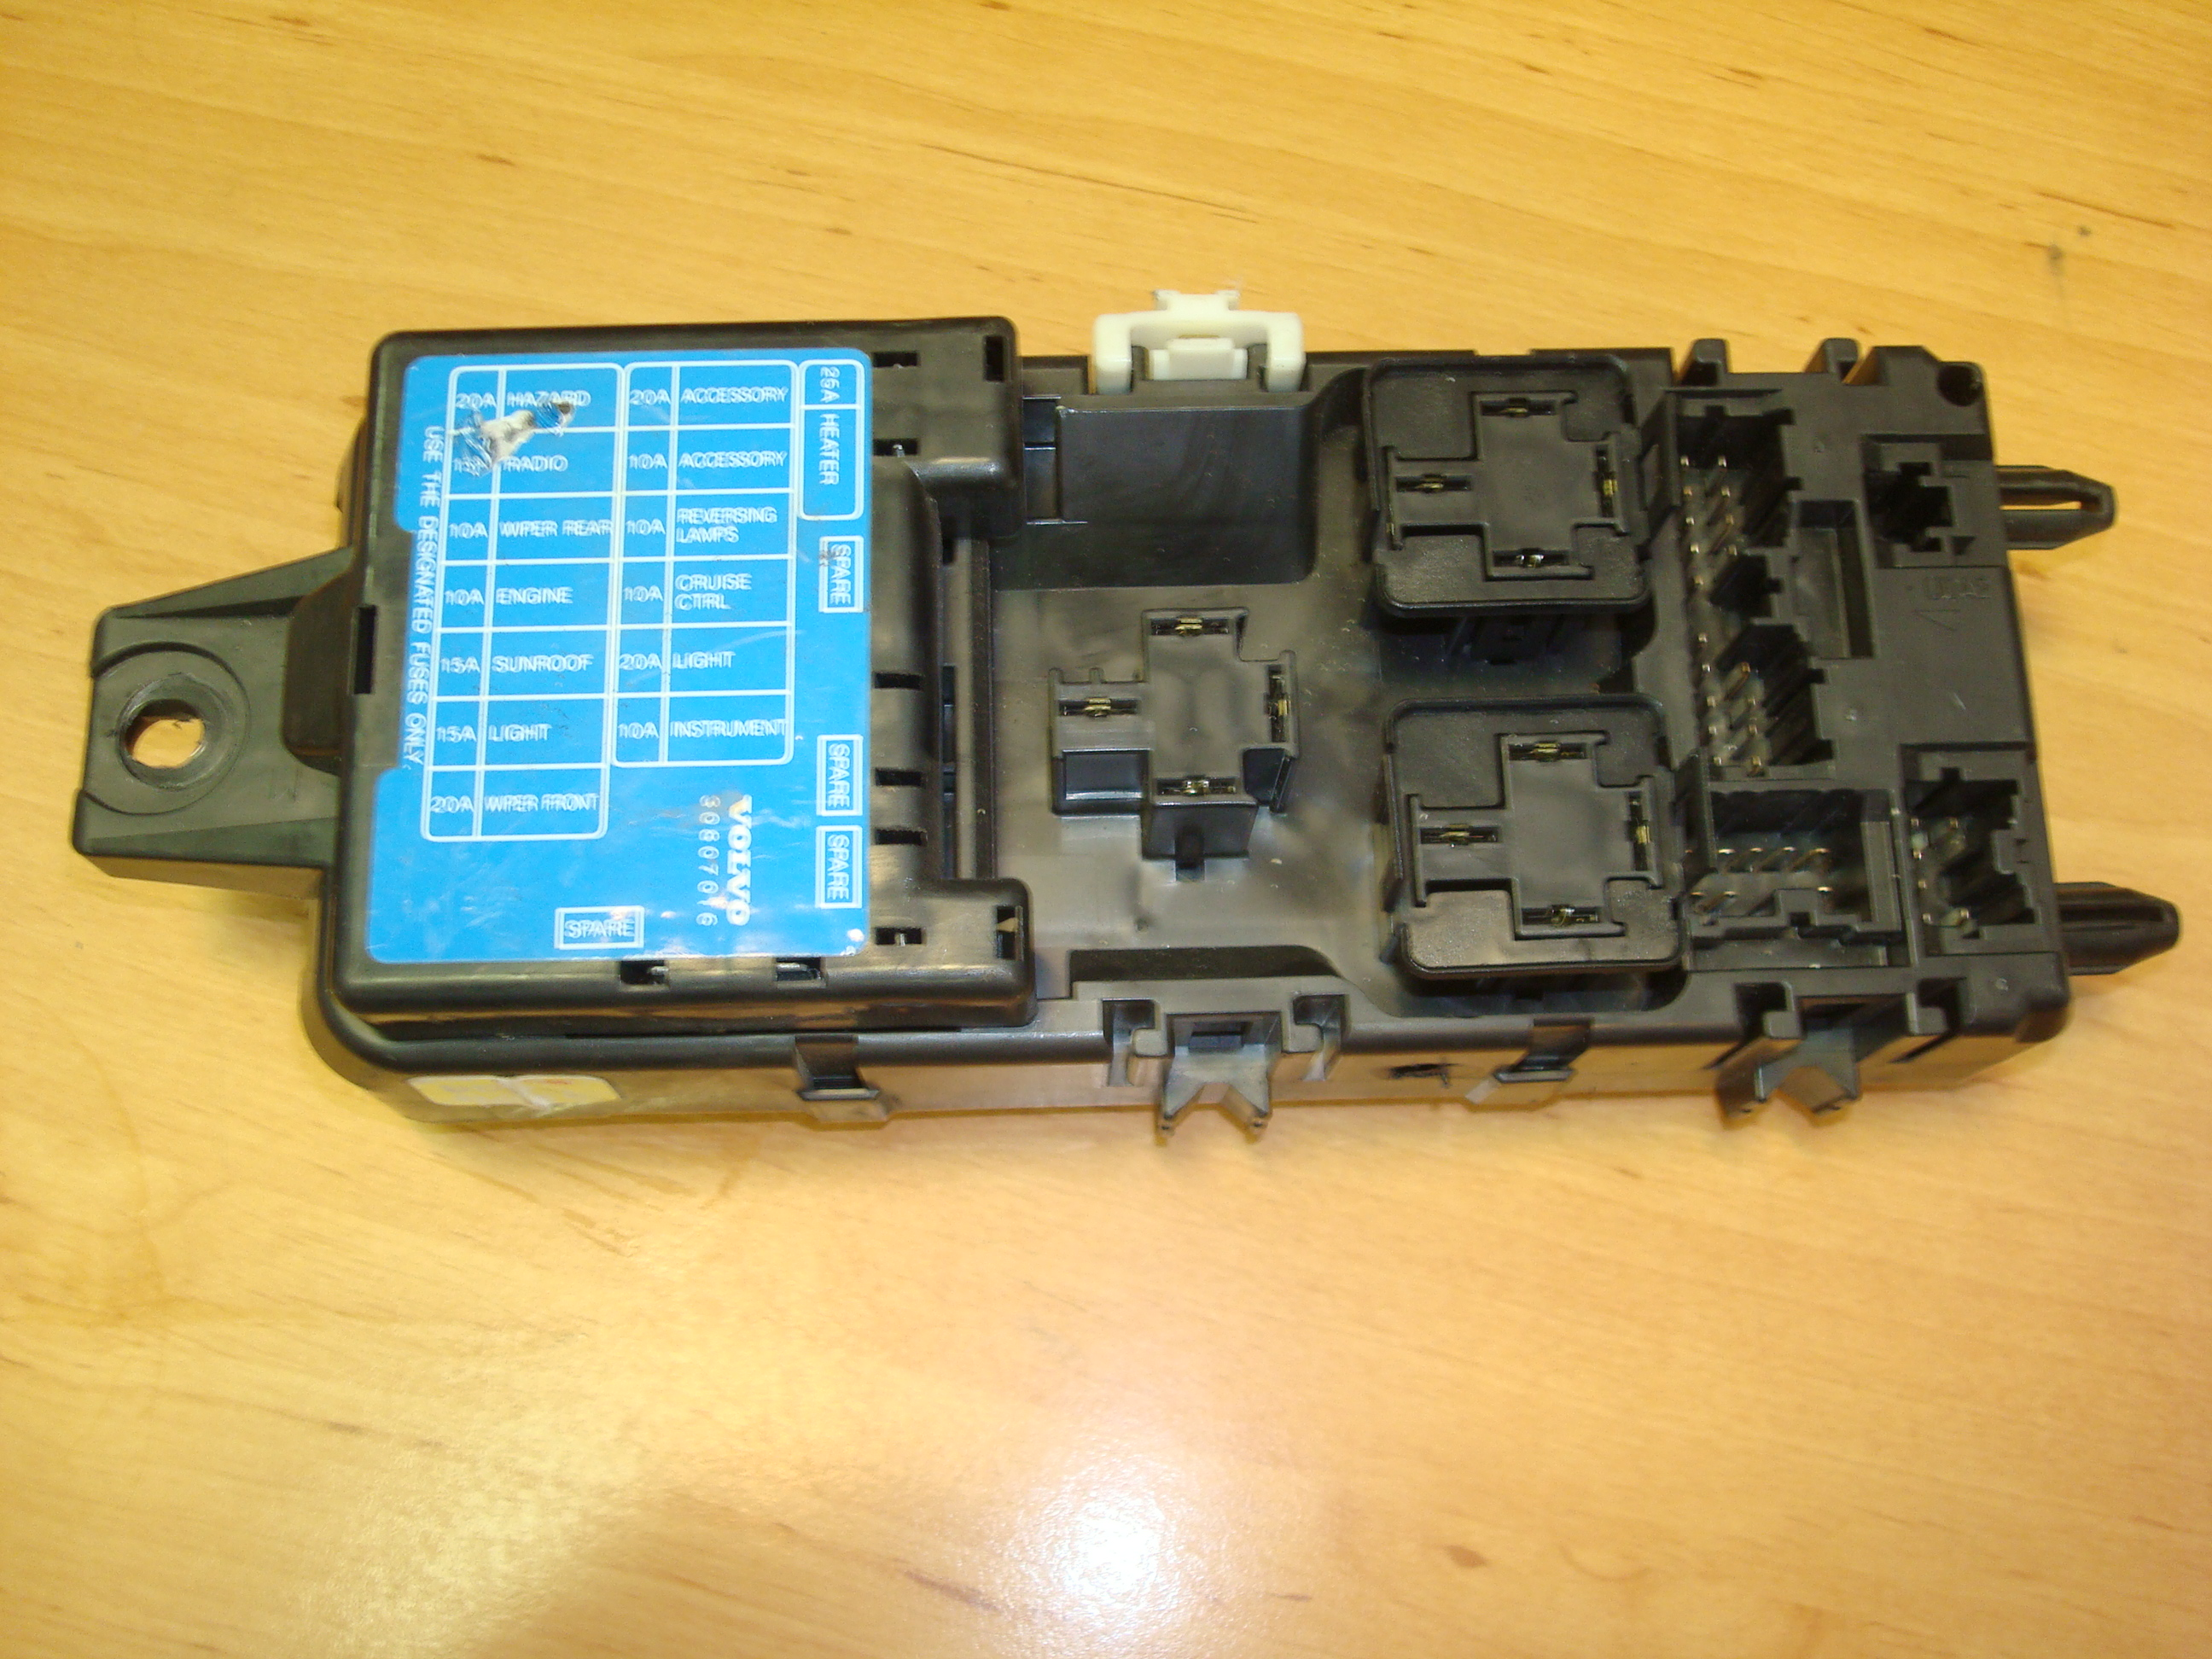 Volvo S40, V 40, Turbo Petrol, 2L, Fuse Box, 30807016 (Article: 30807016)